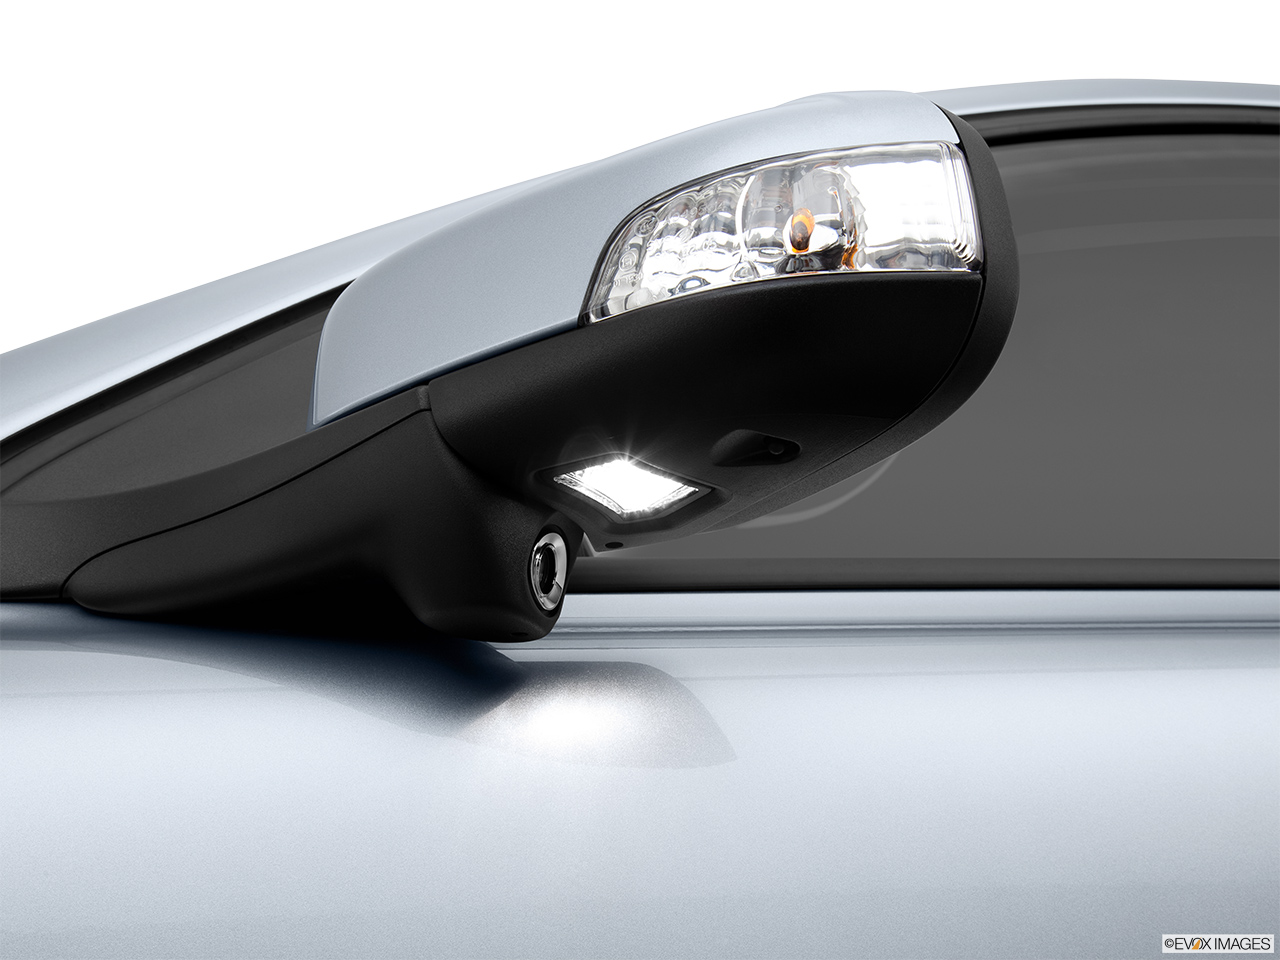 2013 Volvo C30 T5 Premier Plus Driver's side puddle lamp, illuminated